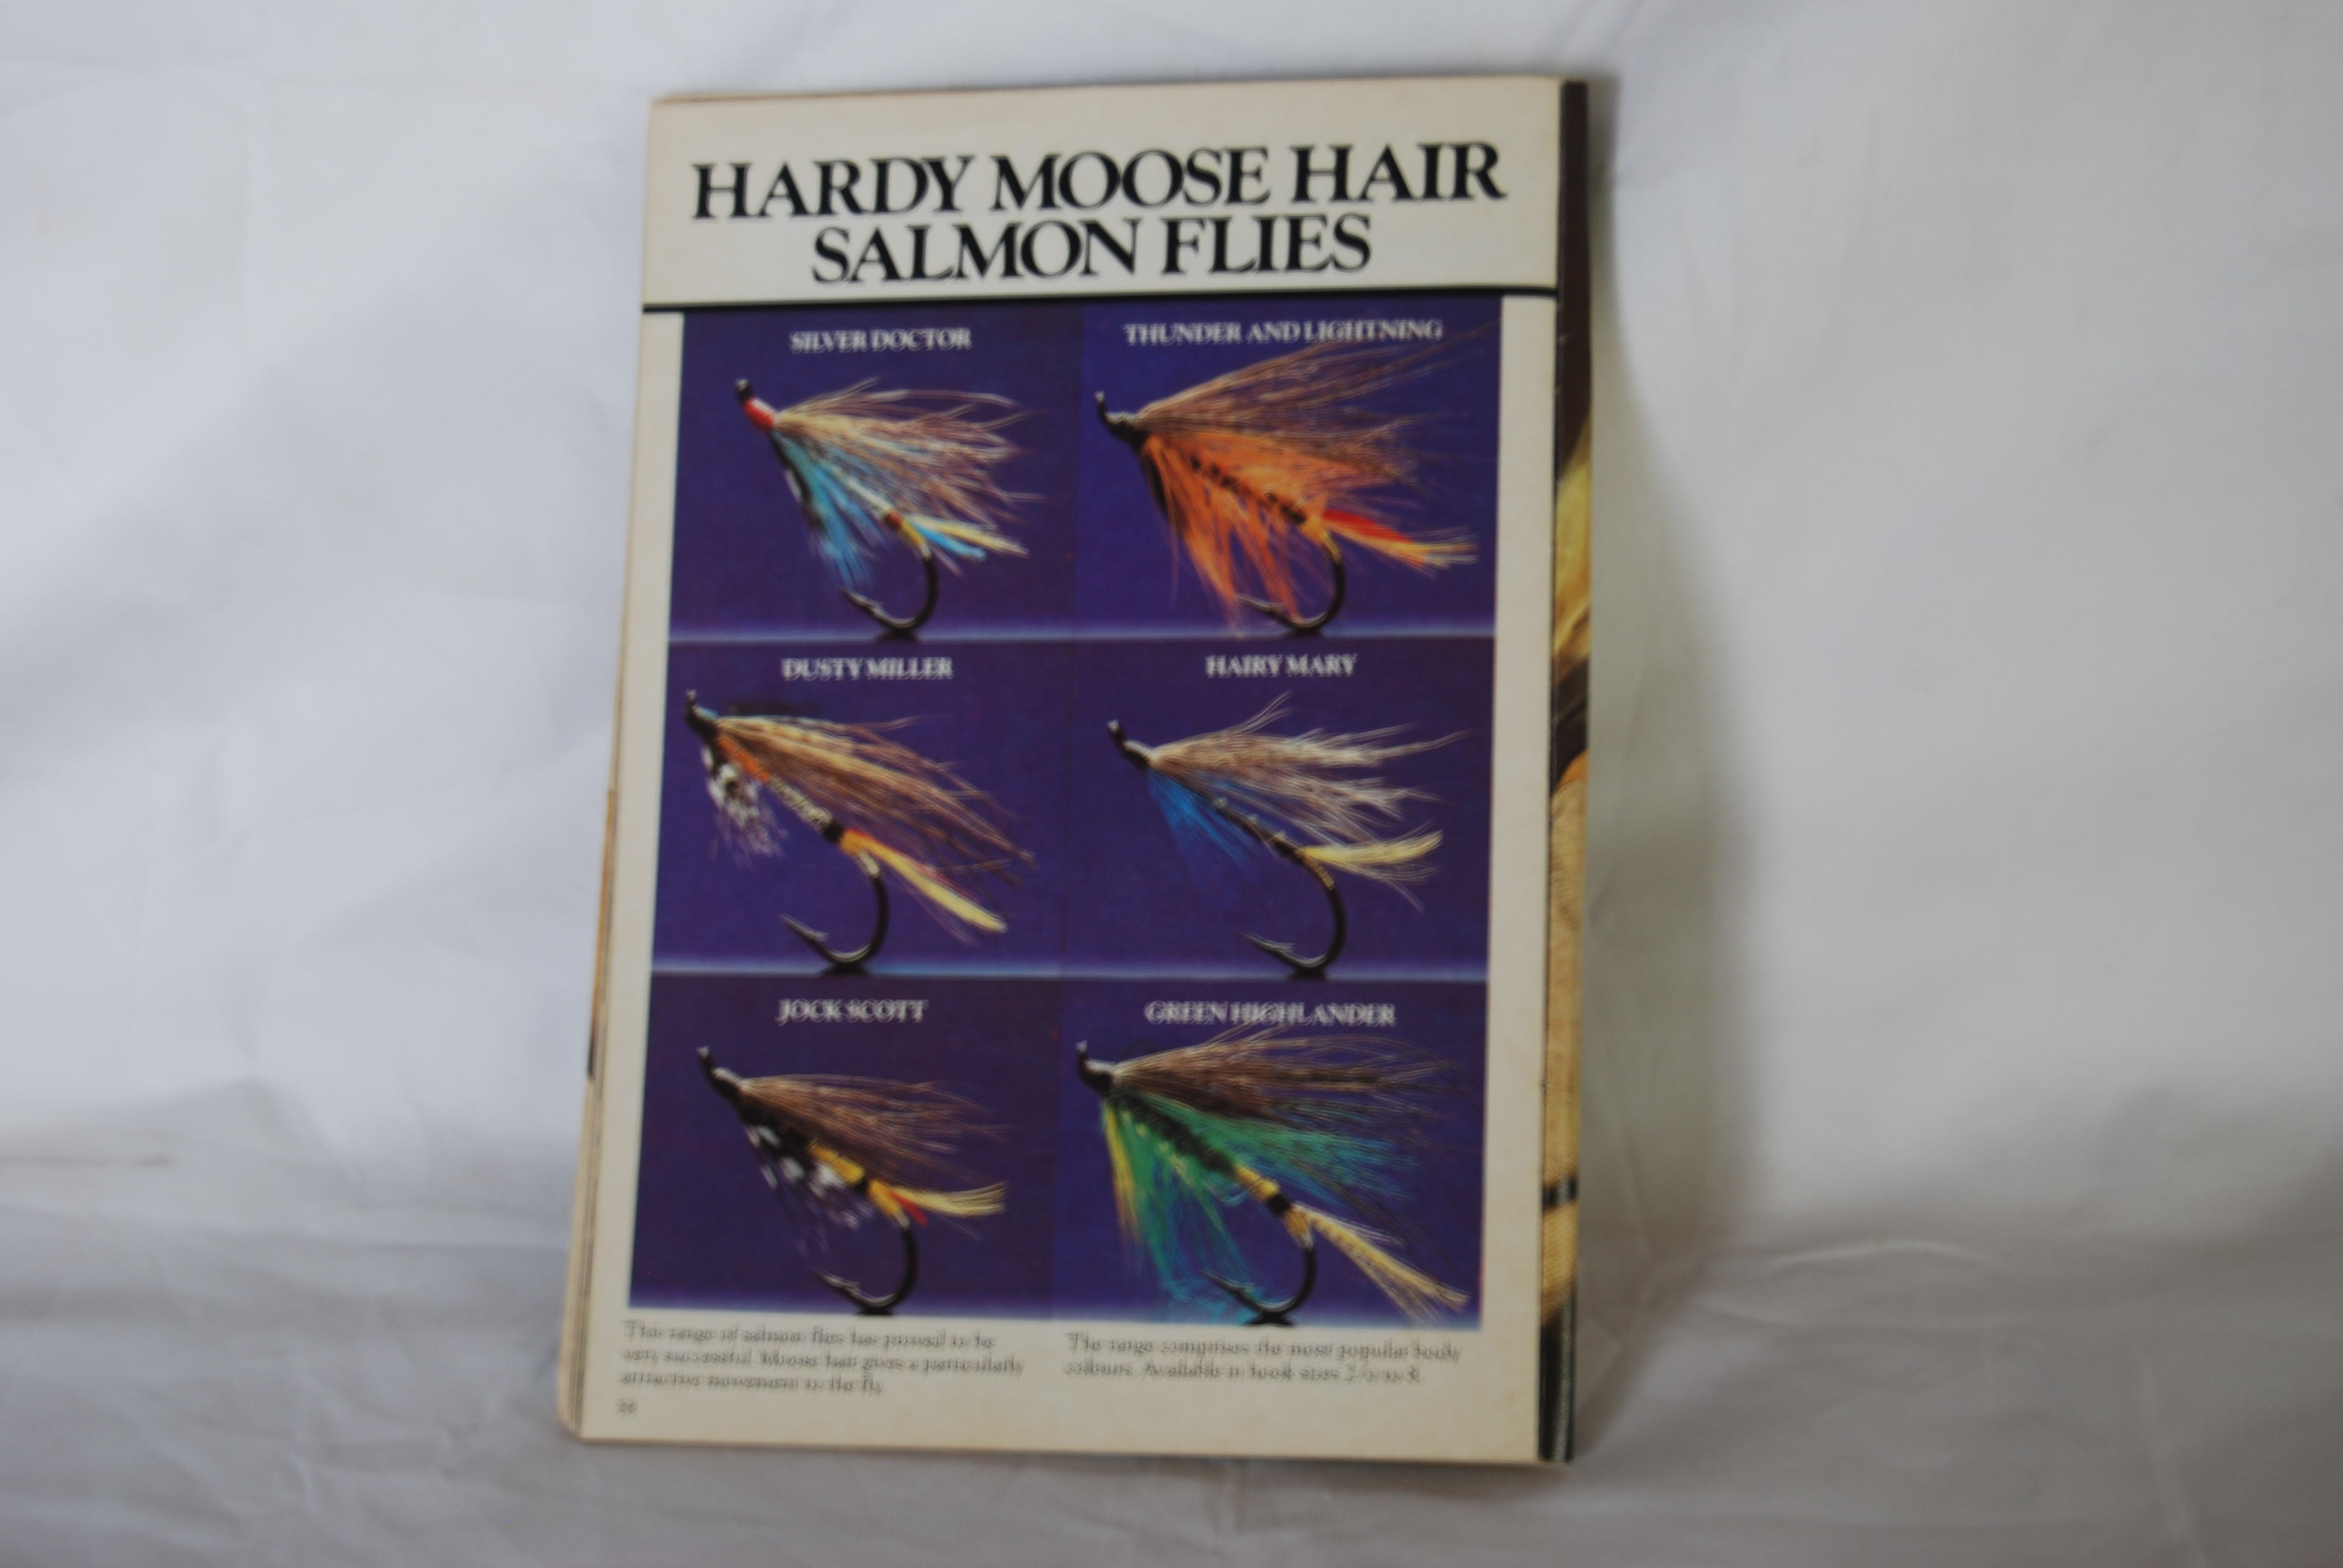 Image for HARDY MOOSE HAIR SALMON FLIES. #8 Hook TULE. In Hardy-marked flier & plastic cover. 2 Flies: Green Highlander & Thunder & Lightning.